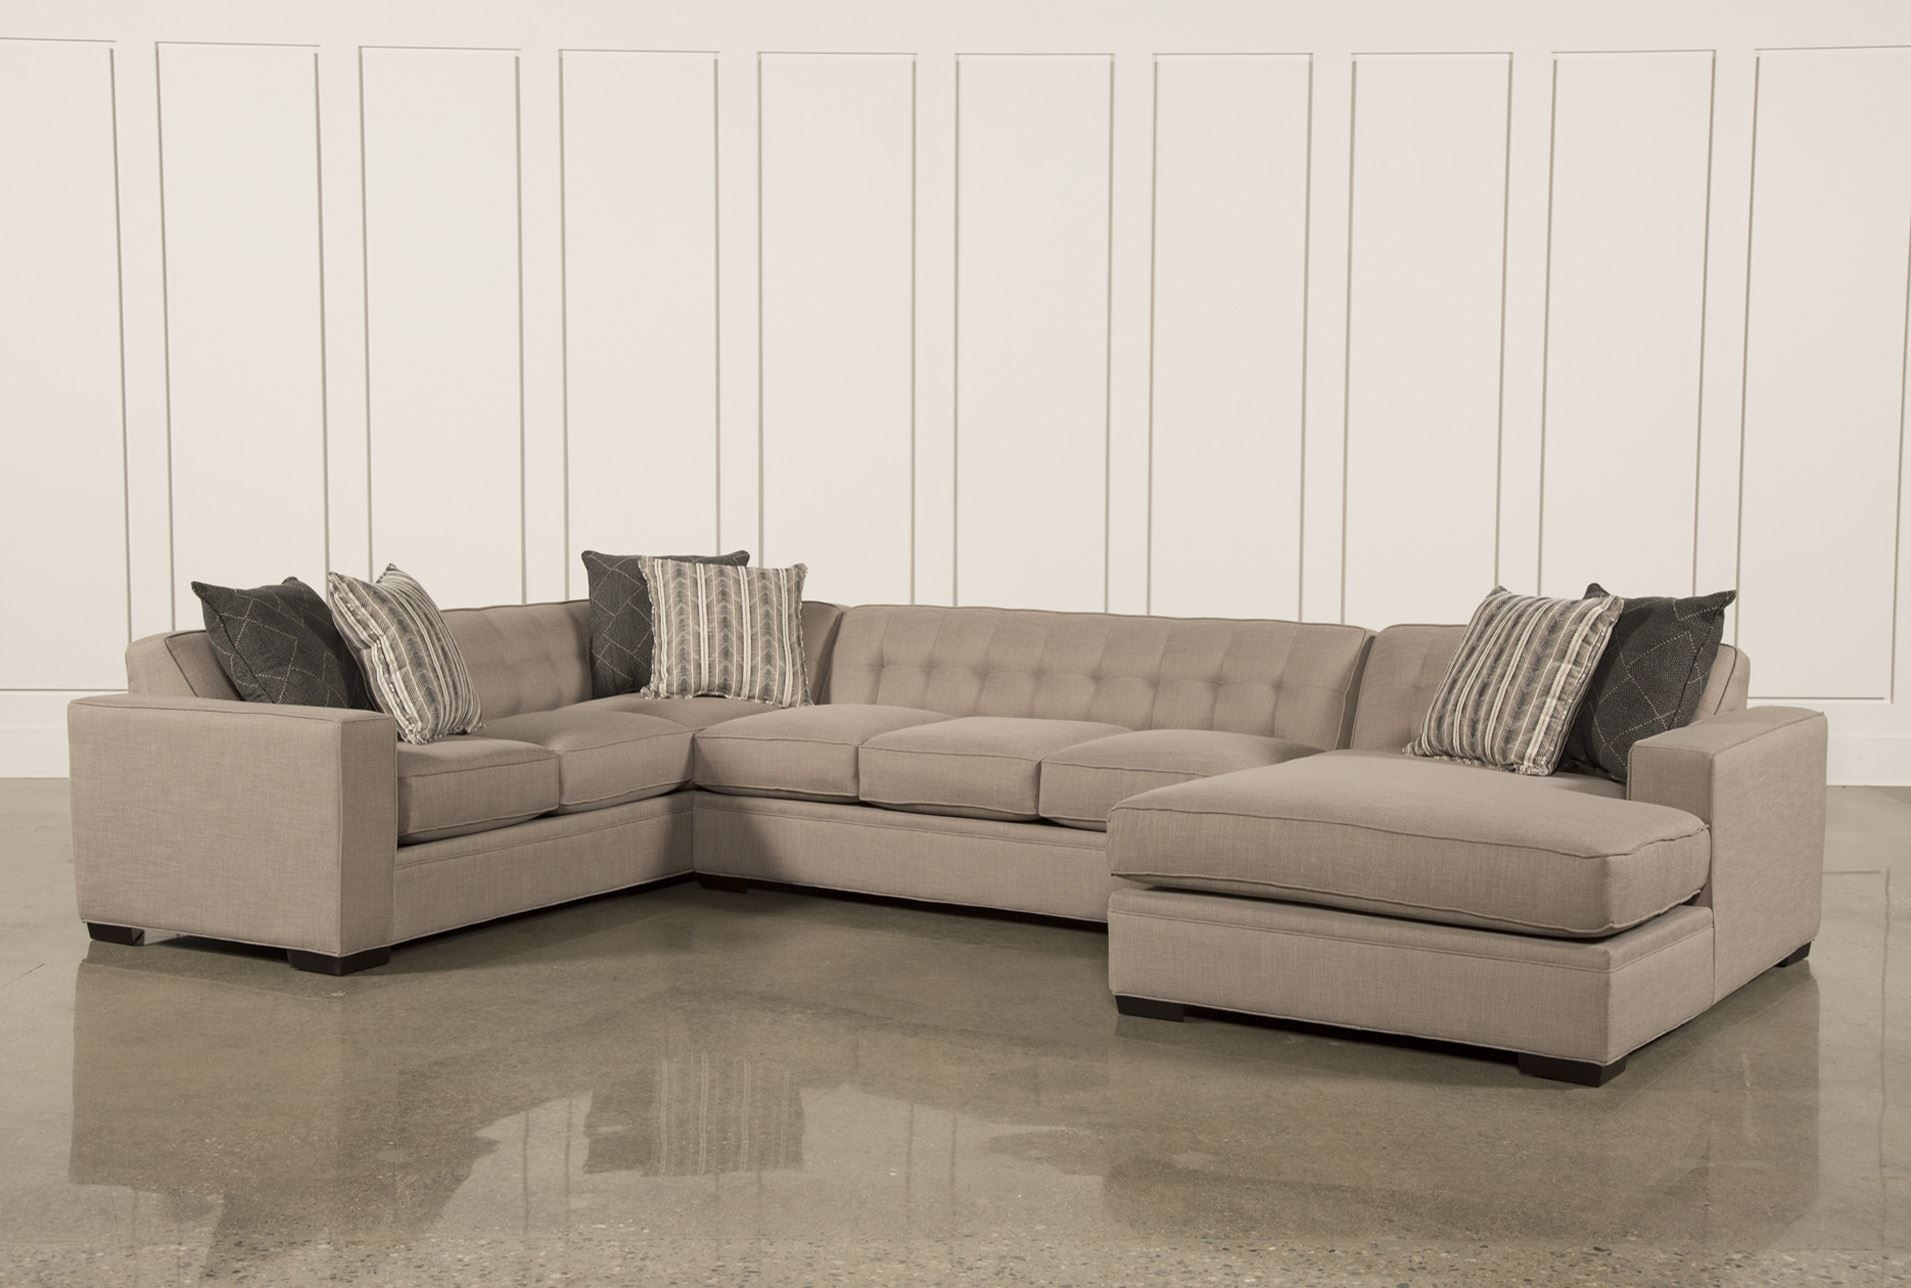 Corbin 3 Piece Sectional W/raf Chaise | New House: Loft | Pinterest For Norfolk Grey 3 Piece Sectionals With Raf Chaise (View 5 of 25)